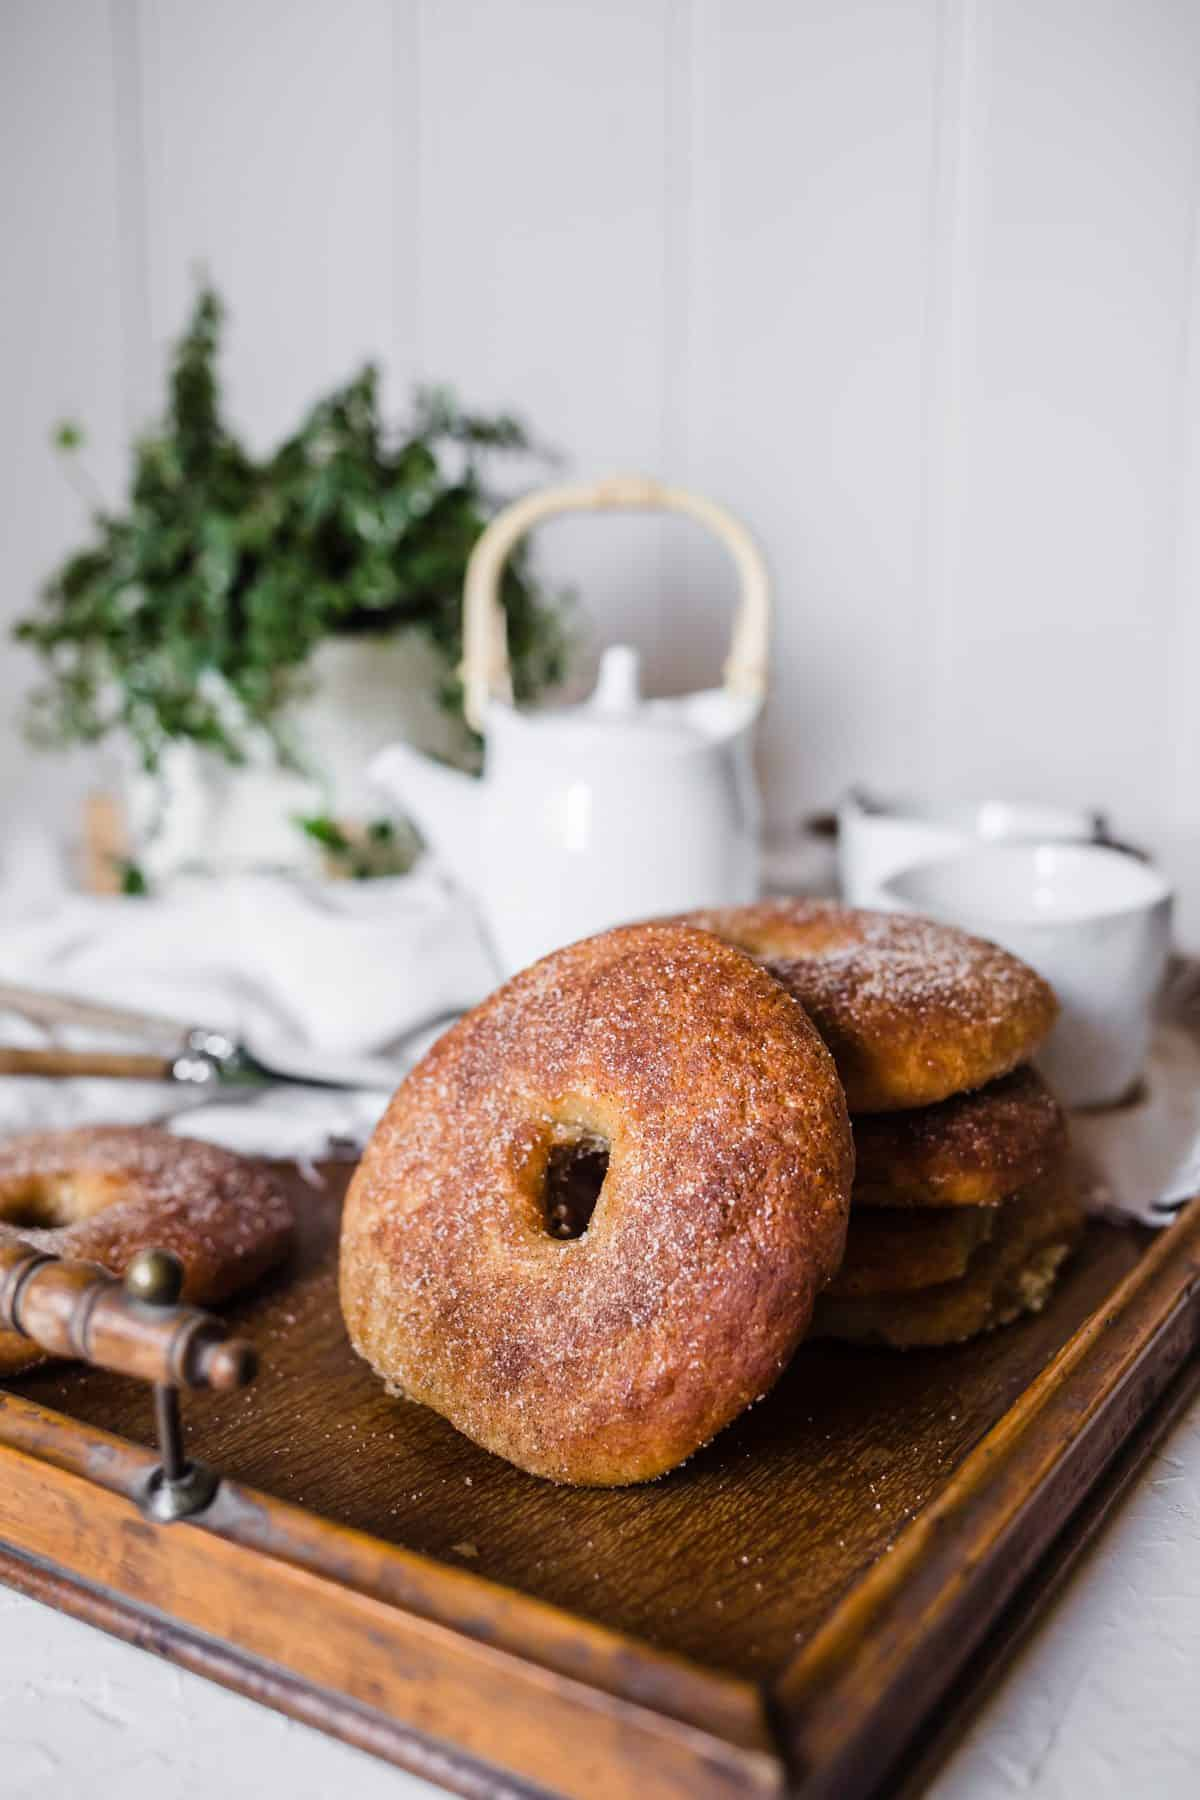 Cinnamon sugar(free) bagels are stacked on a wooden tray with a white tea set and a potted plant in the background.